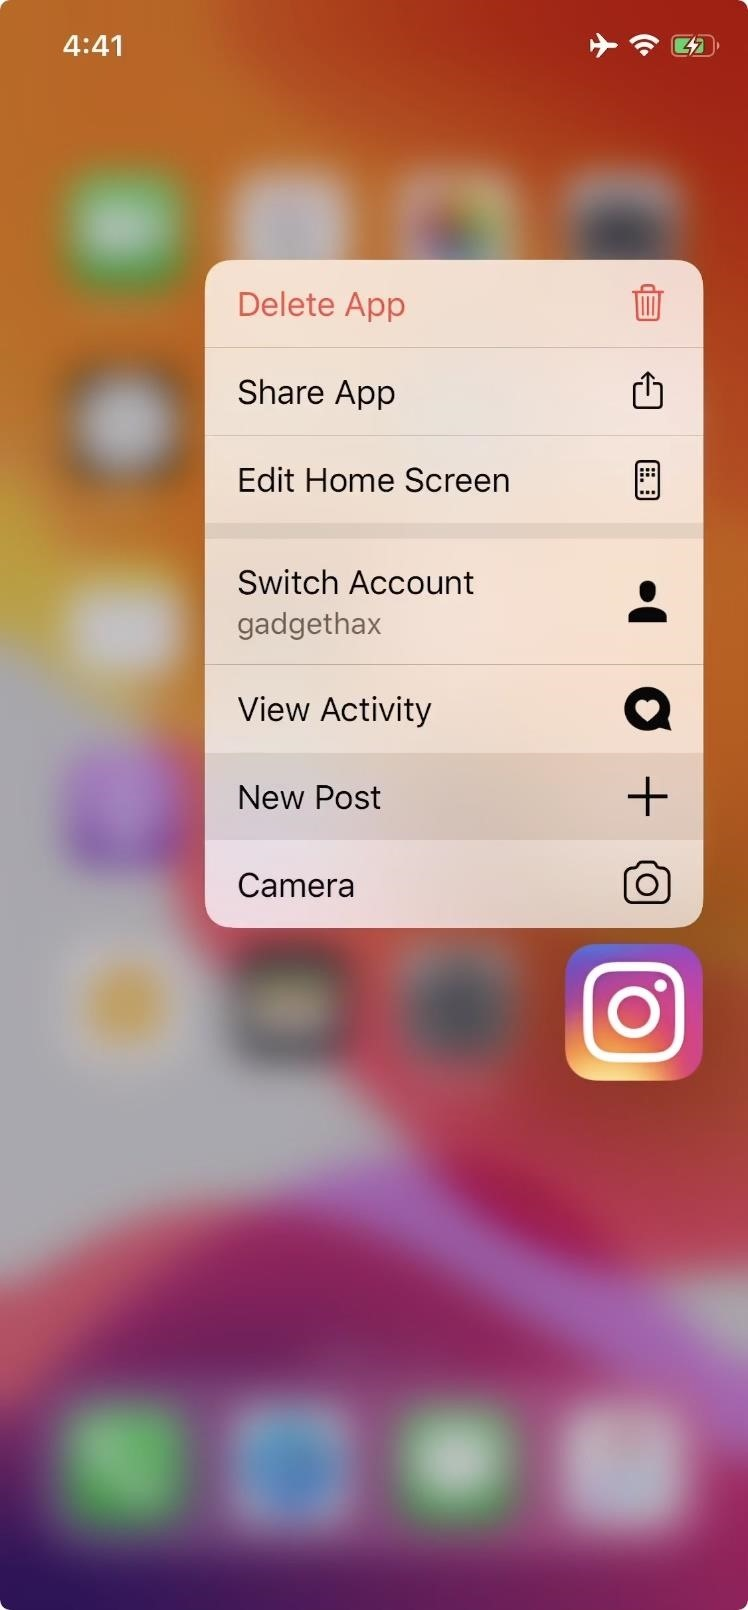 With this trick you can start a new Instagram post in just 1 tap